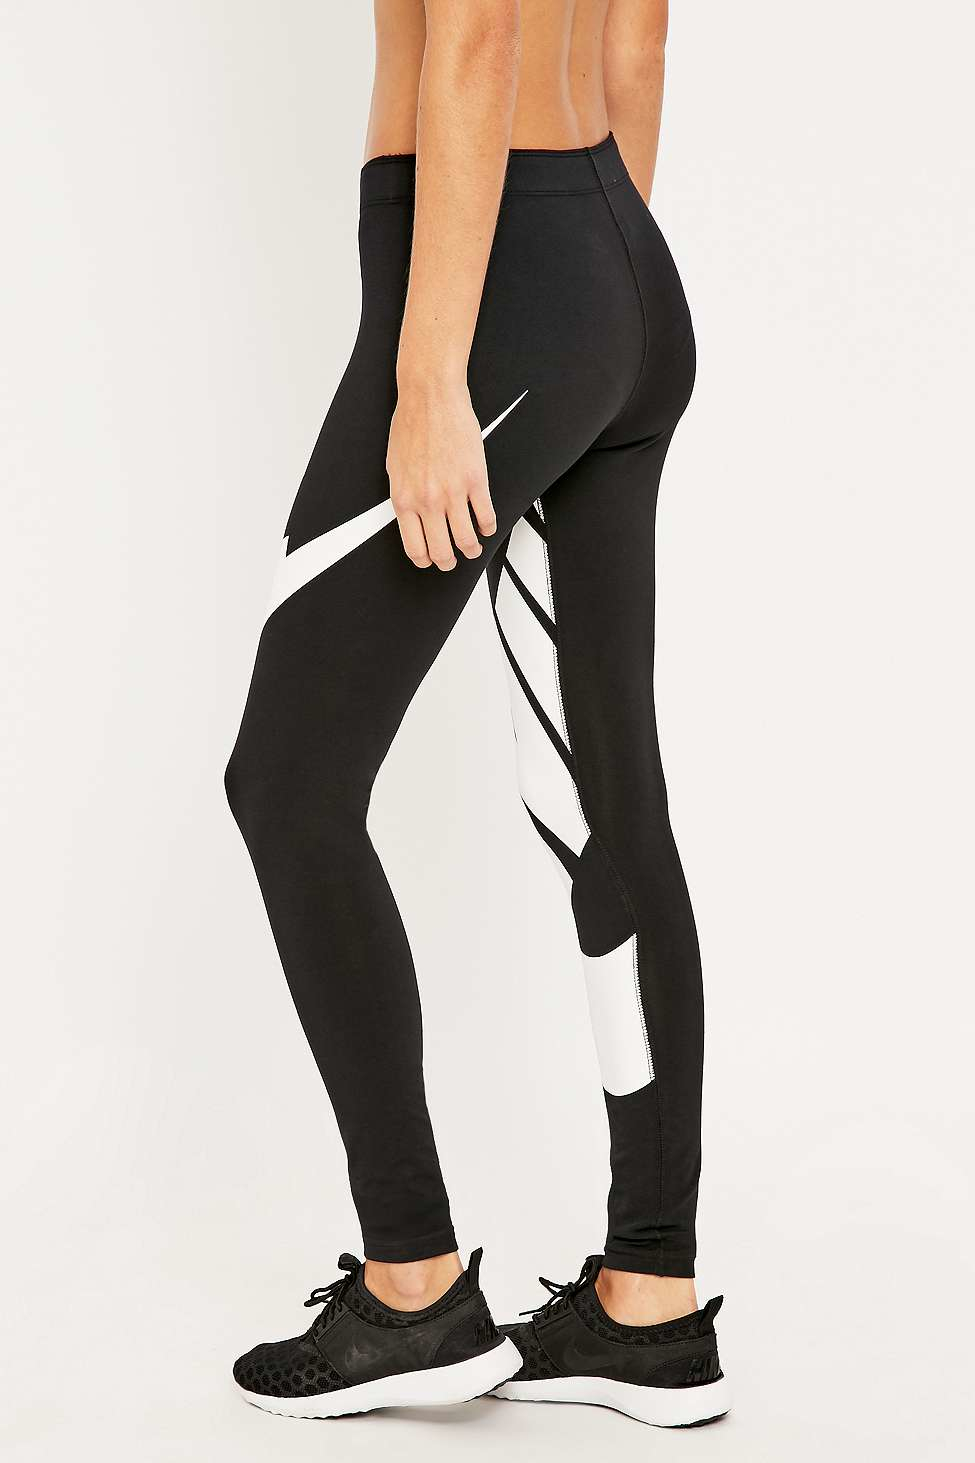 8f963e52bd330 Nike Leg-a-see Exploded Leggings in Black - Lyst